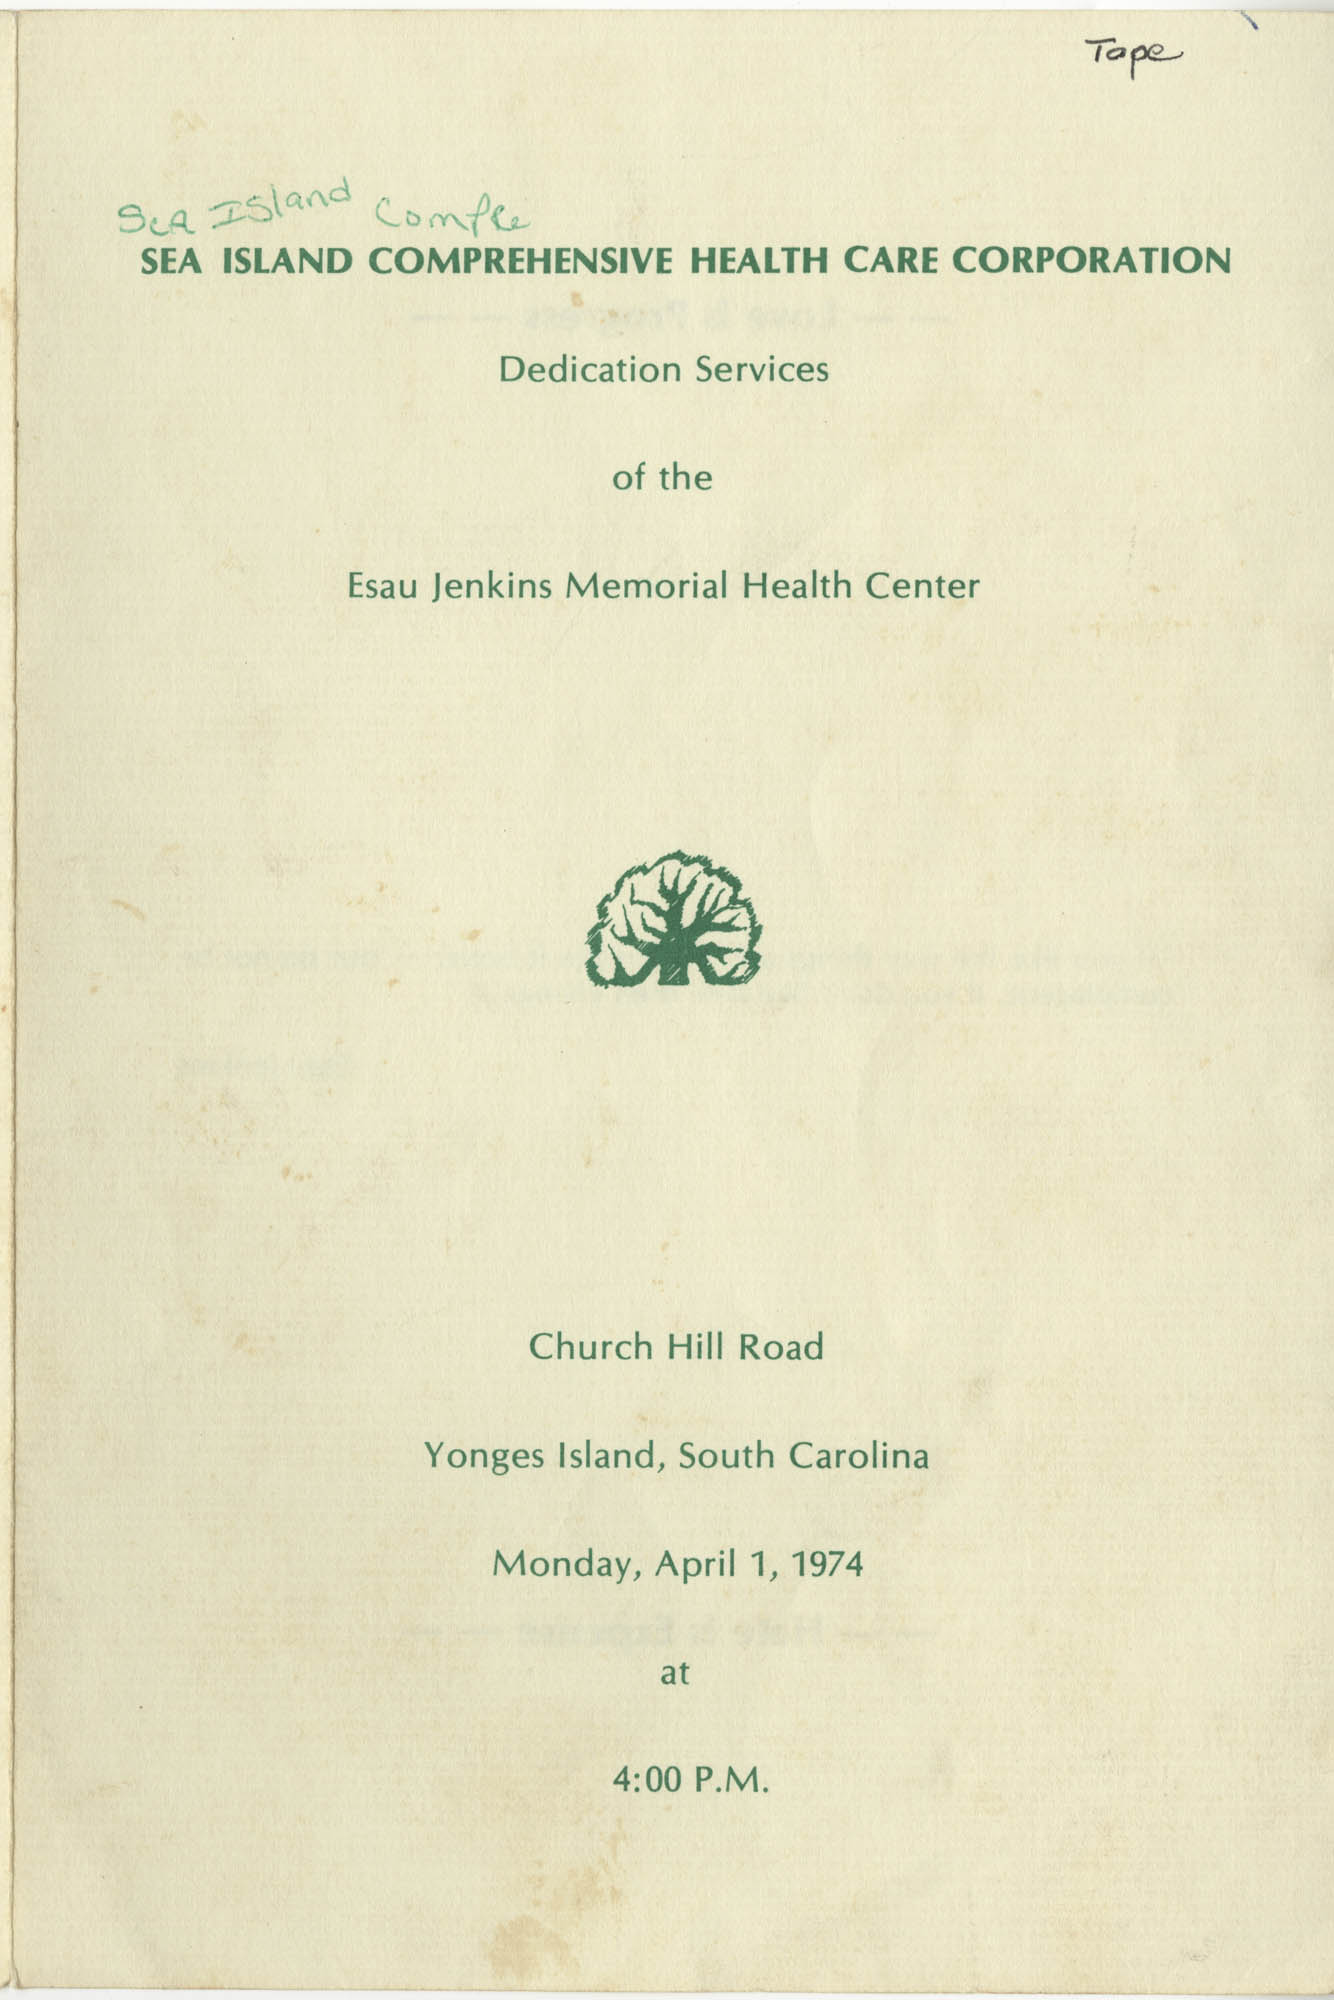 Dedication Services of the Esau Jenkins Memorial Health Center